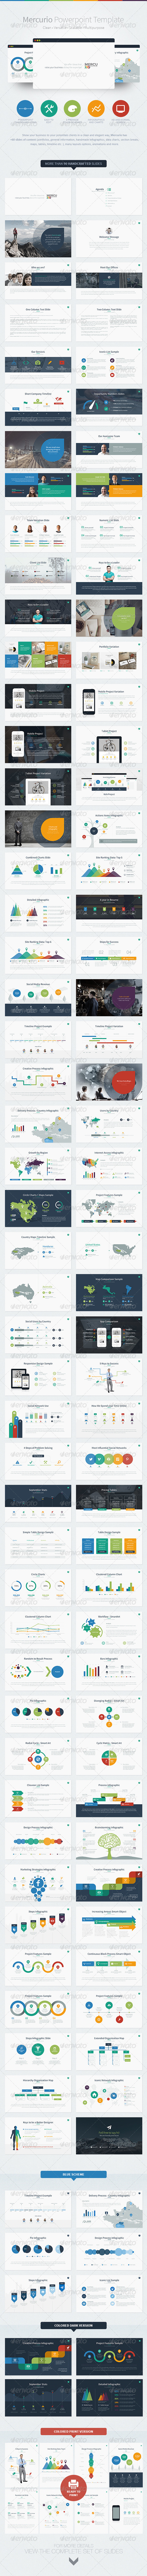 GraphicRiver Mercurio PowerPoint Presentation Template 8527176